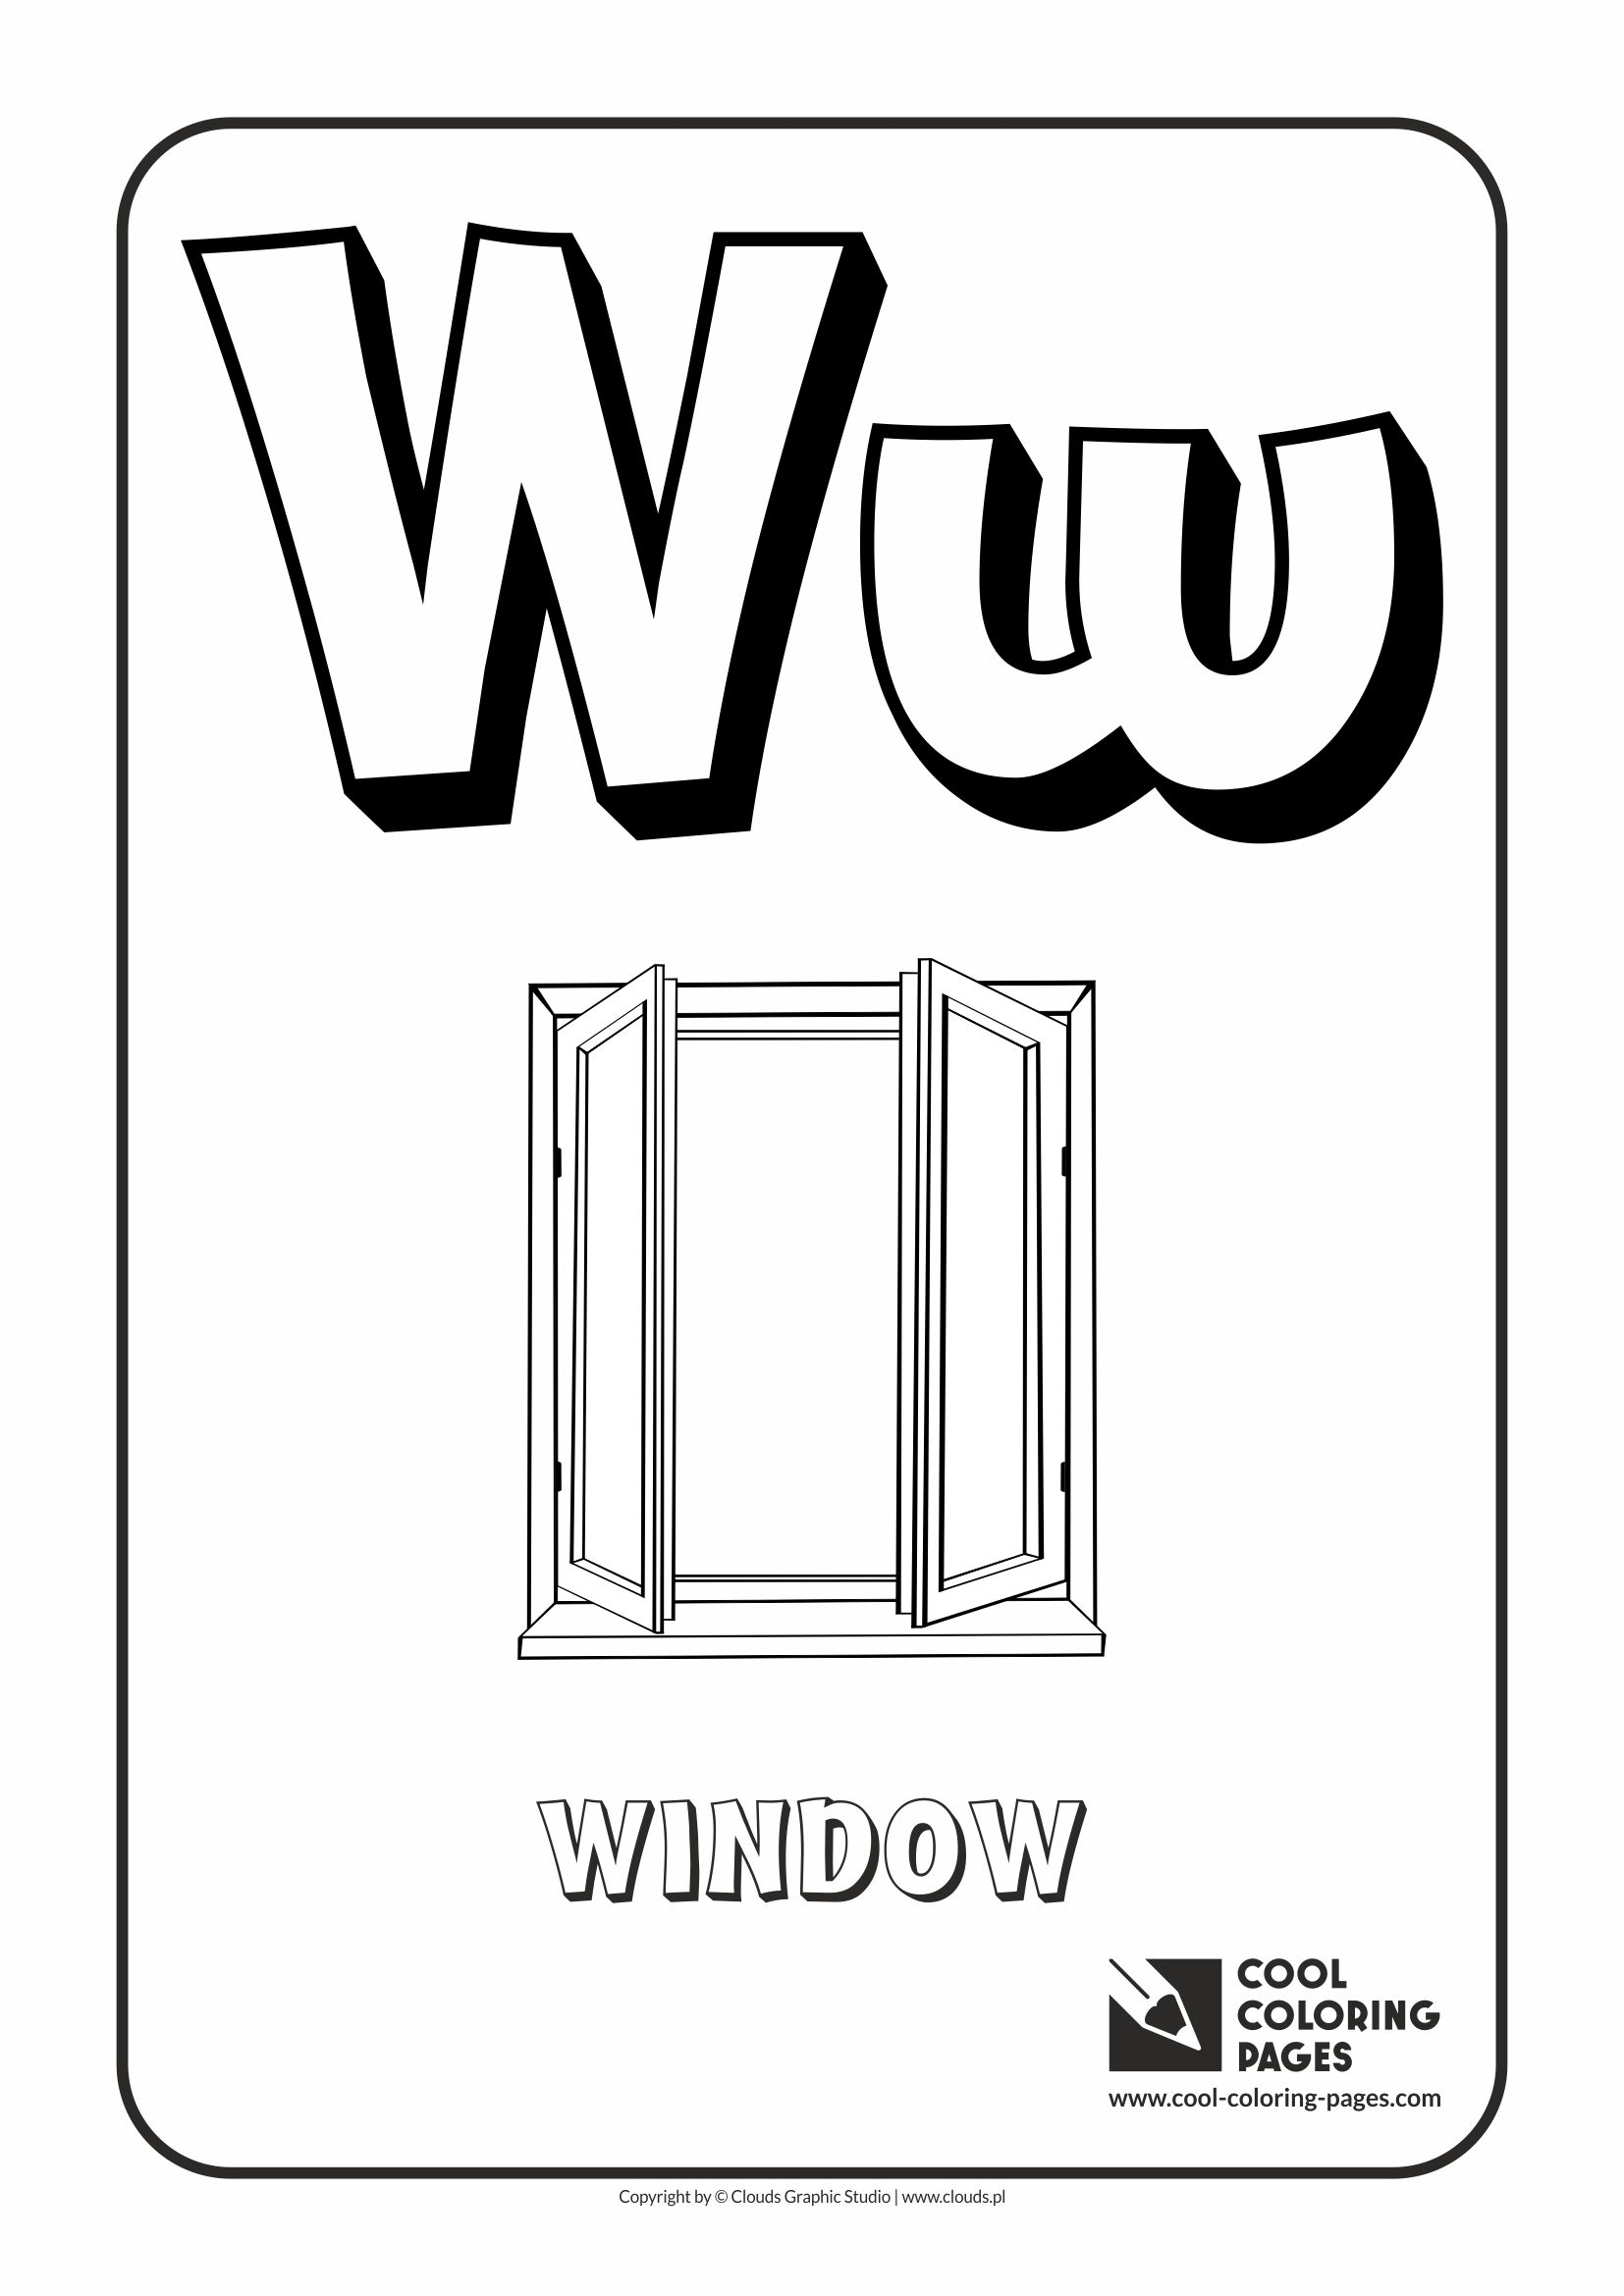 Alphabet w coloring pages -  Alphabet Letter W Coloring Page With Letter W Download